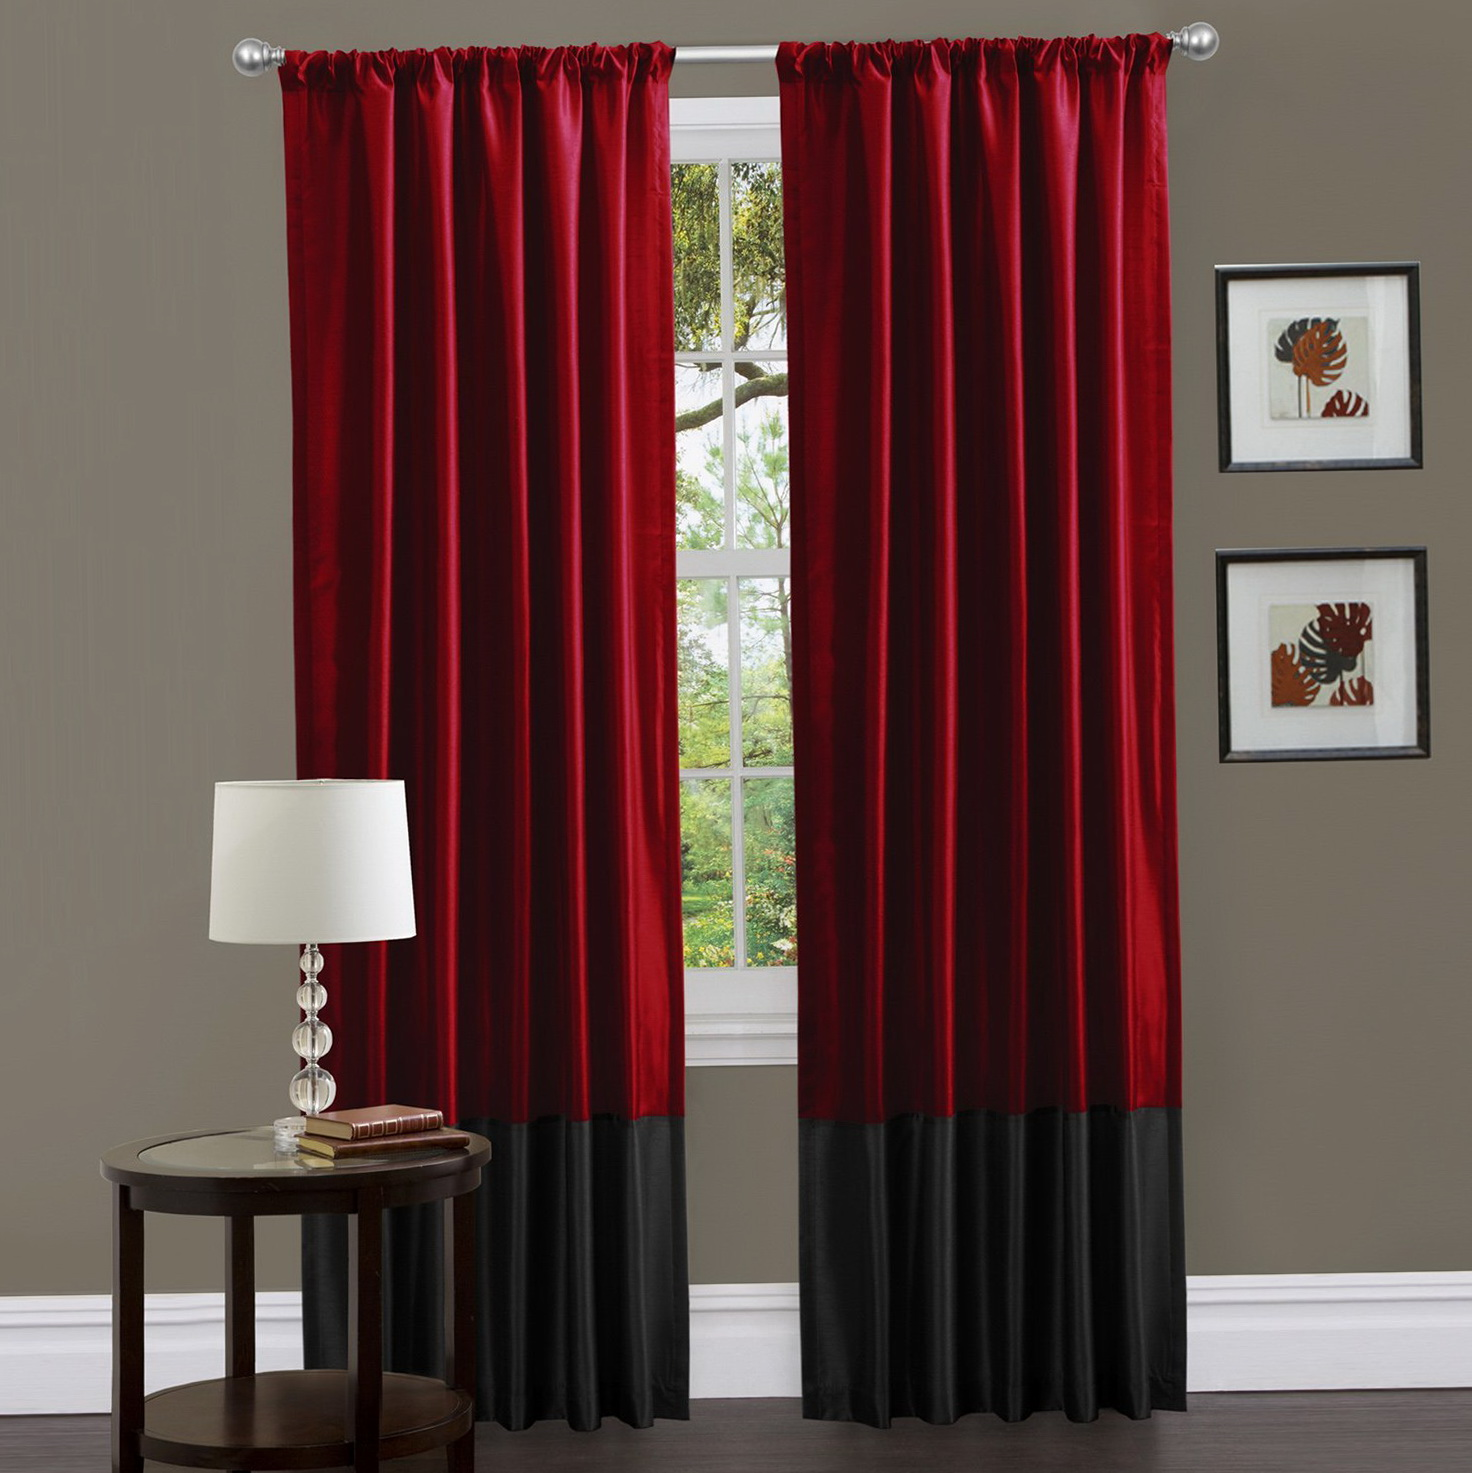 Black Red And White Curtains Home Design Ideas